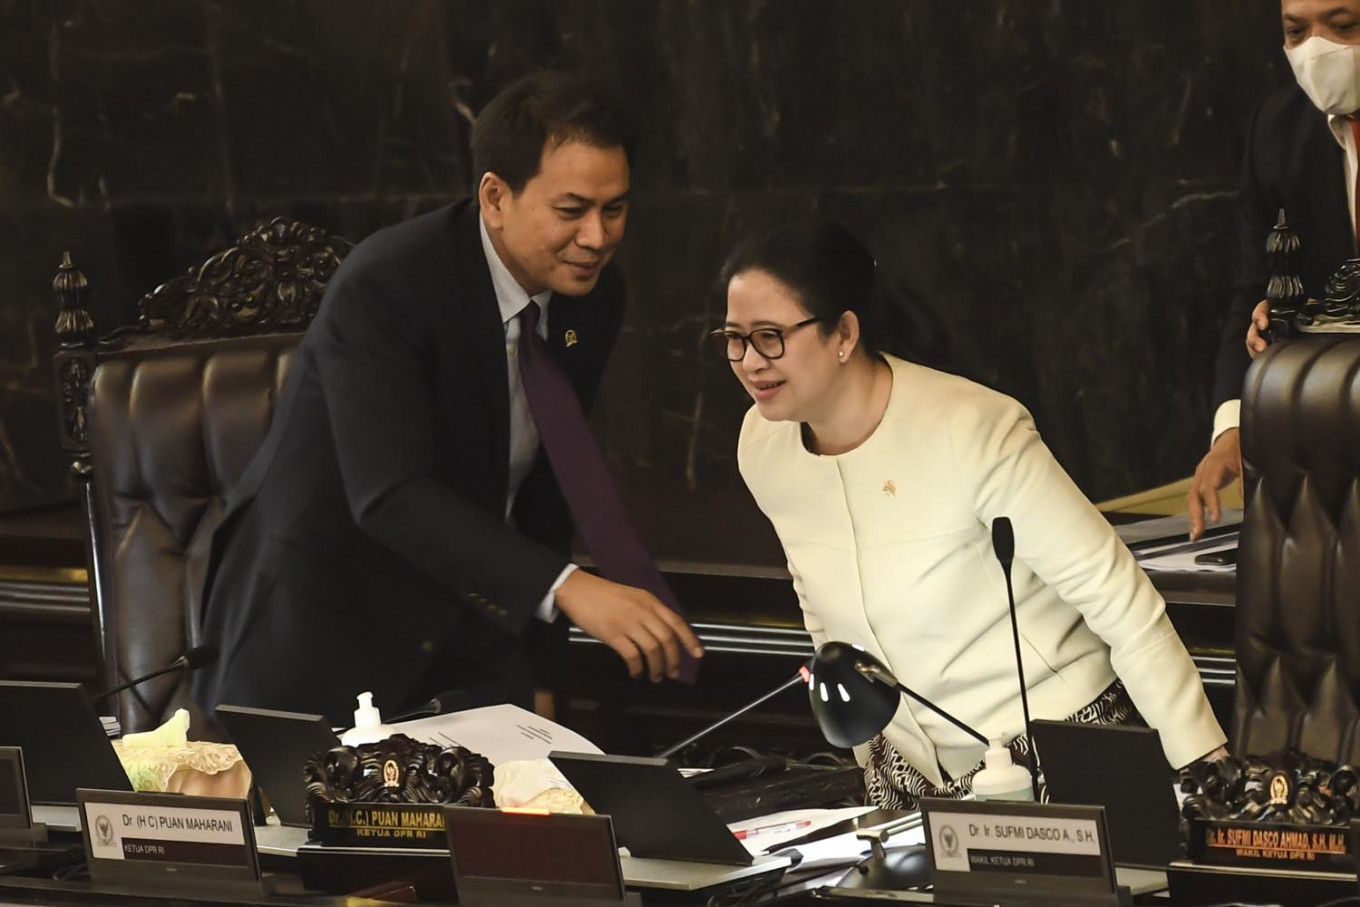 House approves revised Mining Law amid outcry